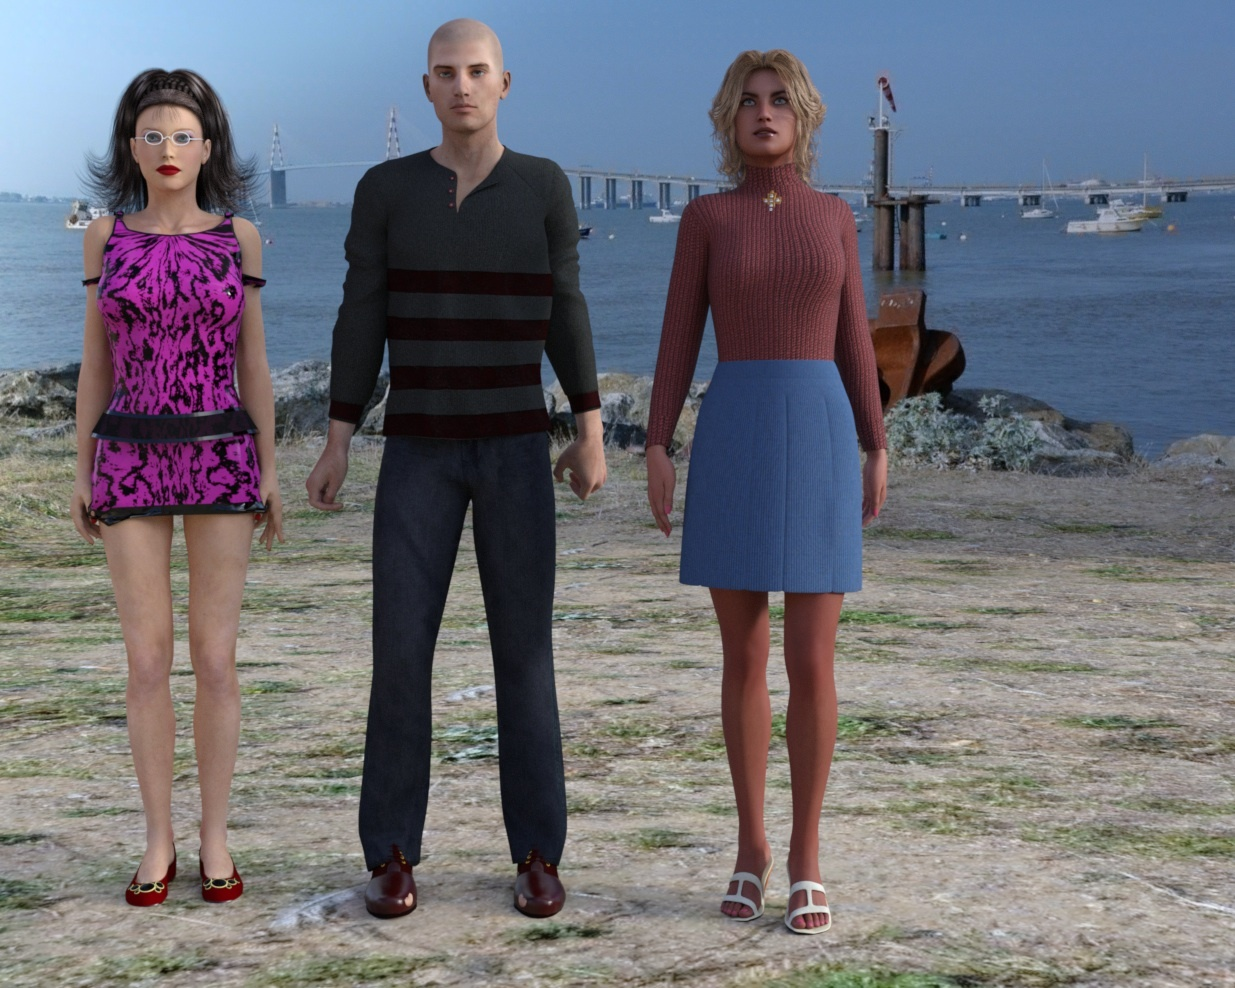 Sunday - The Fisherman & His Sisters